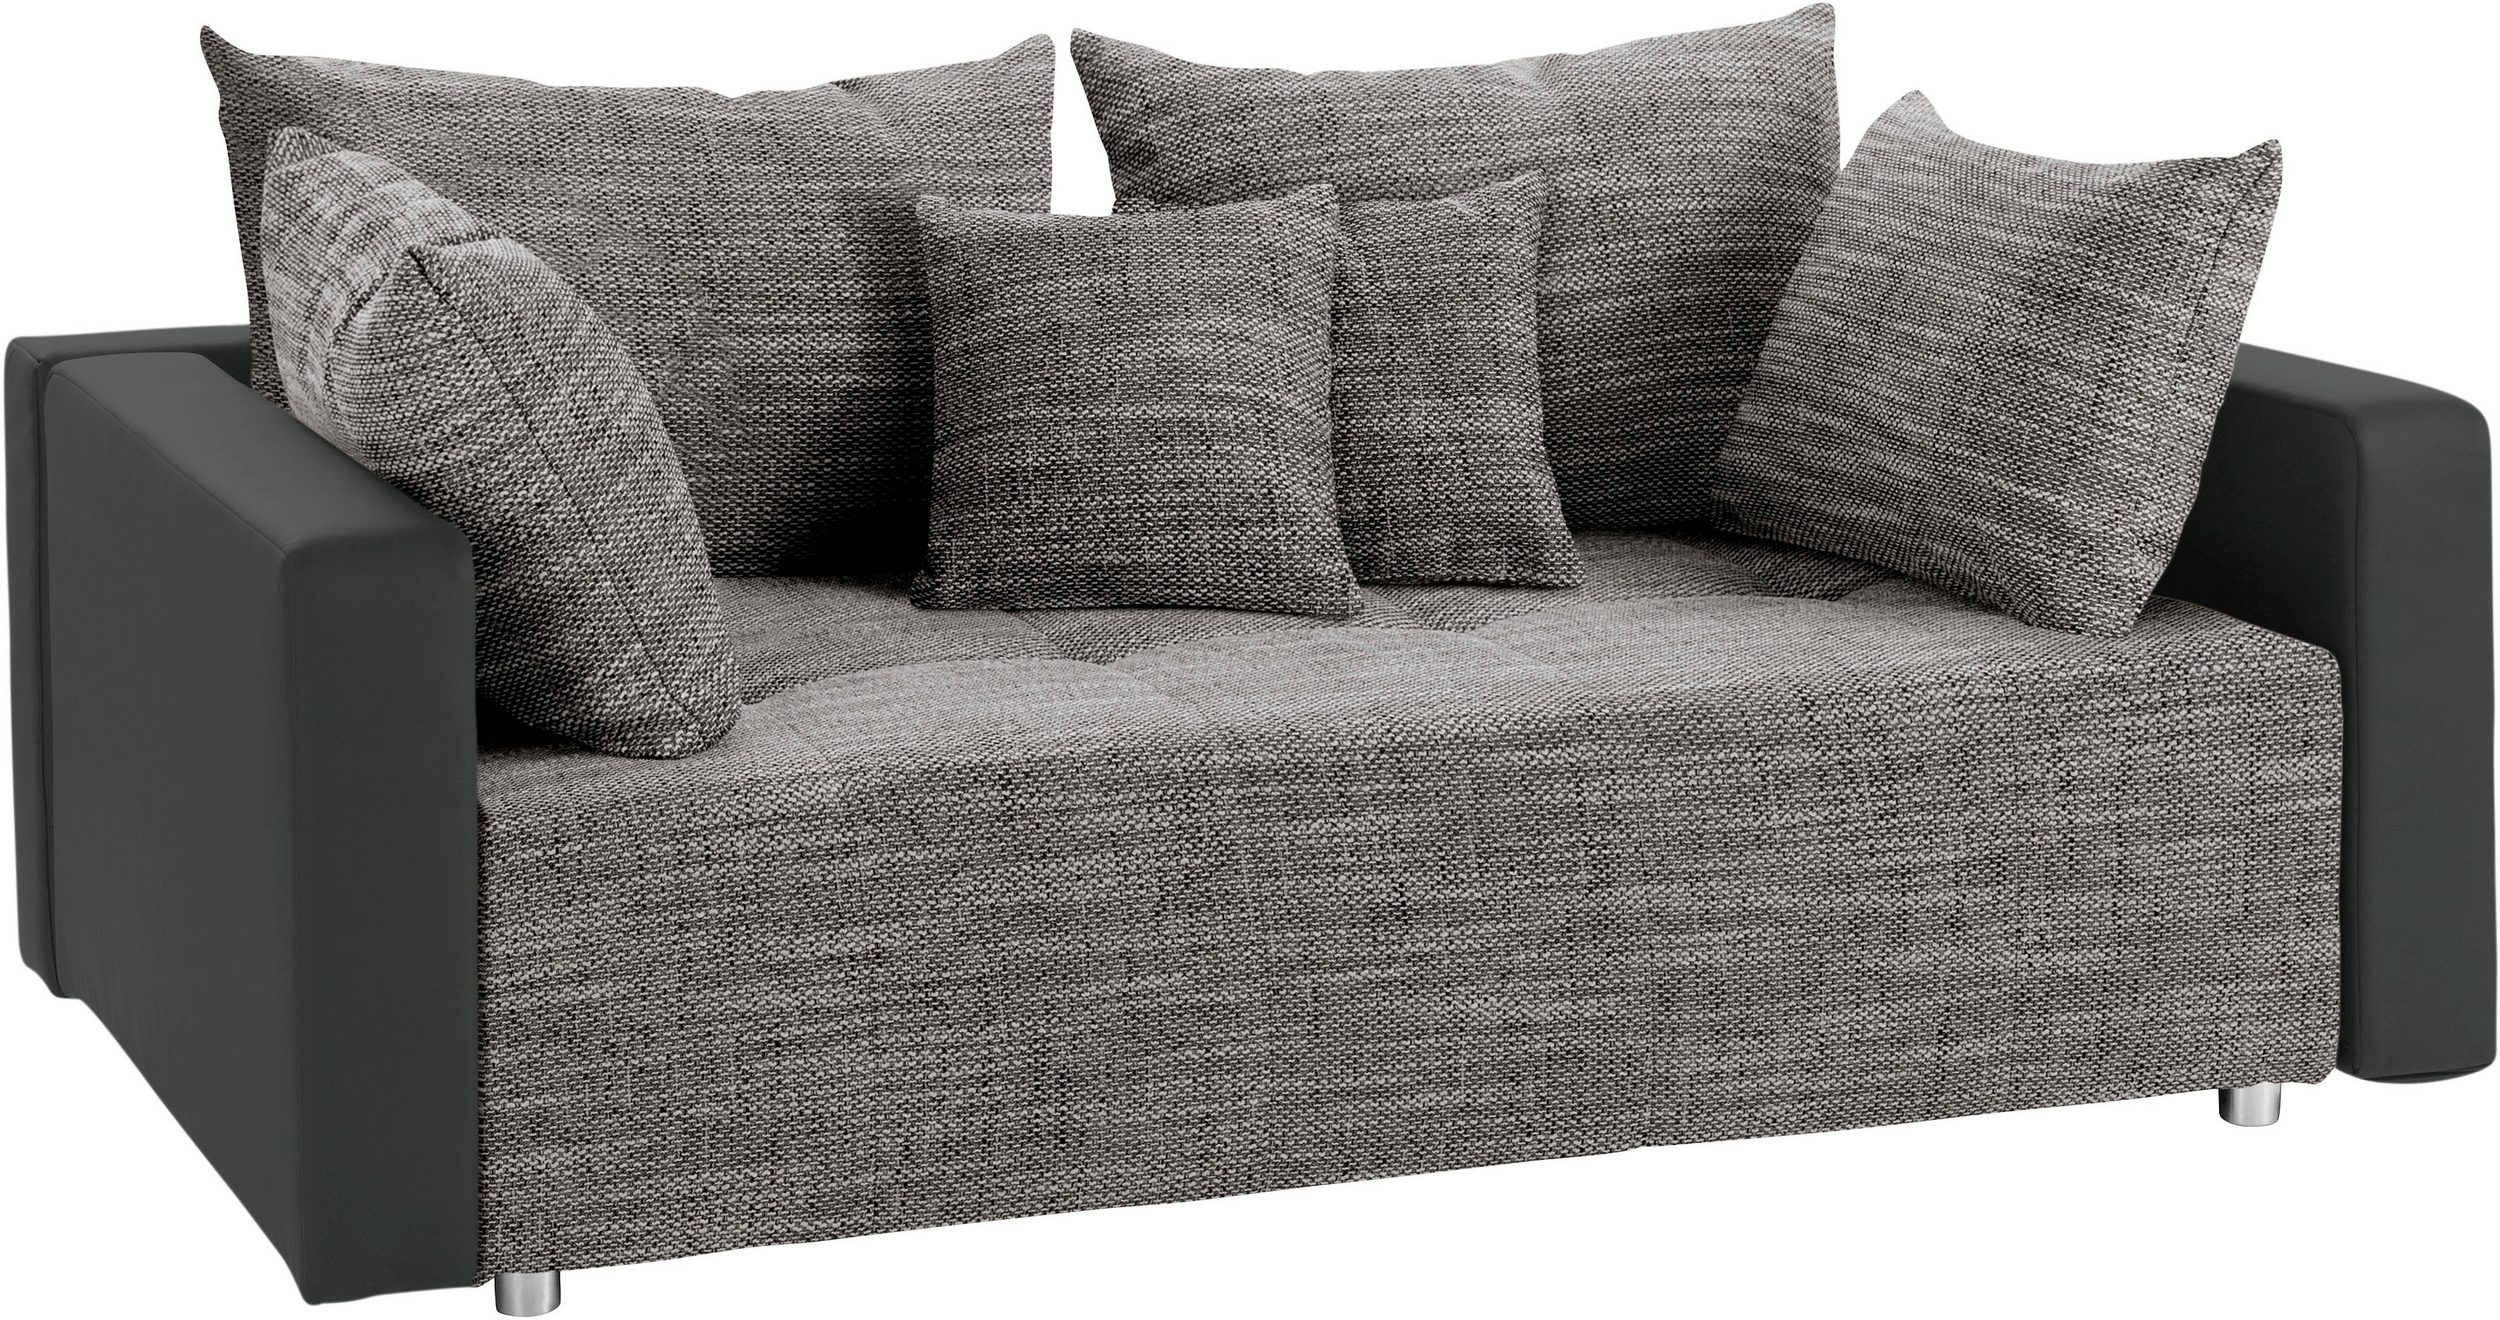 COLLECTION AB Schlafsofa, inklusive Bettkasten - COLLECTION AB